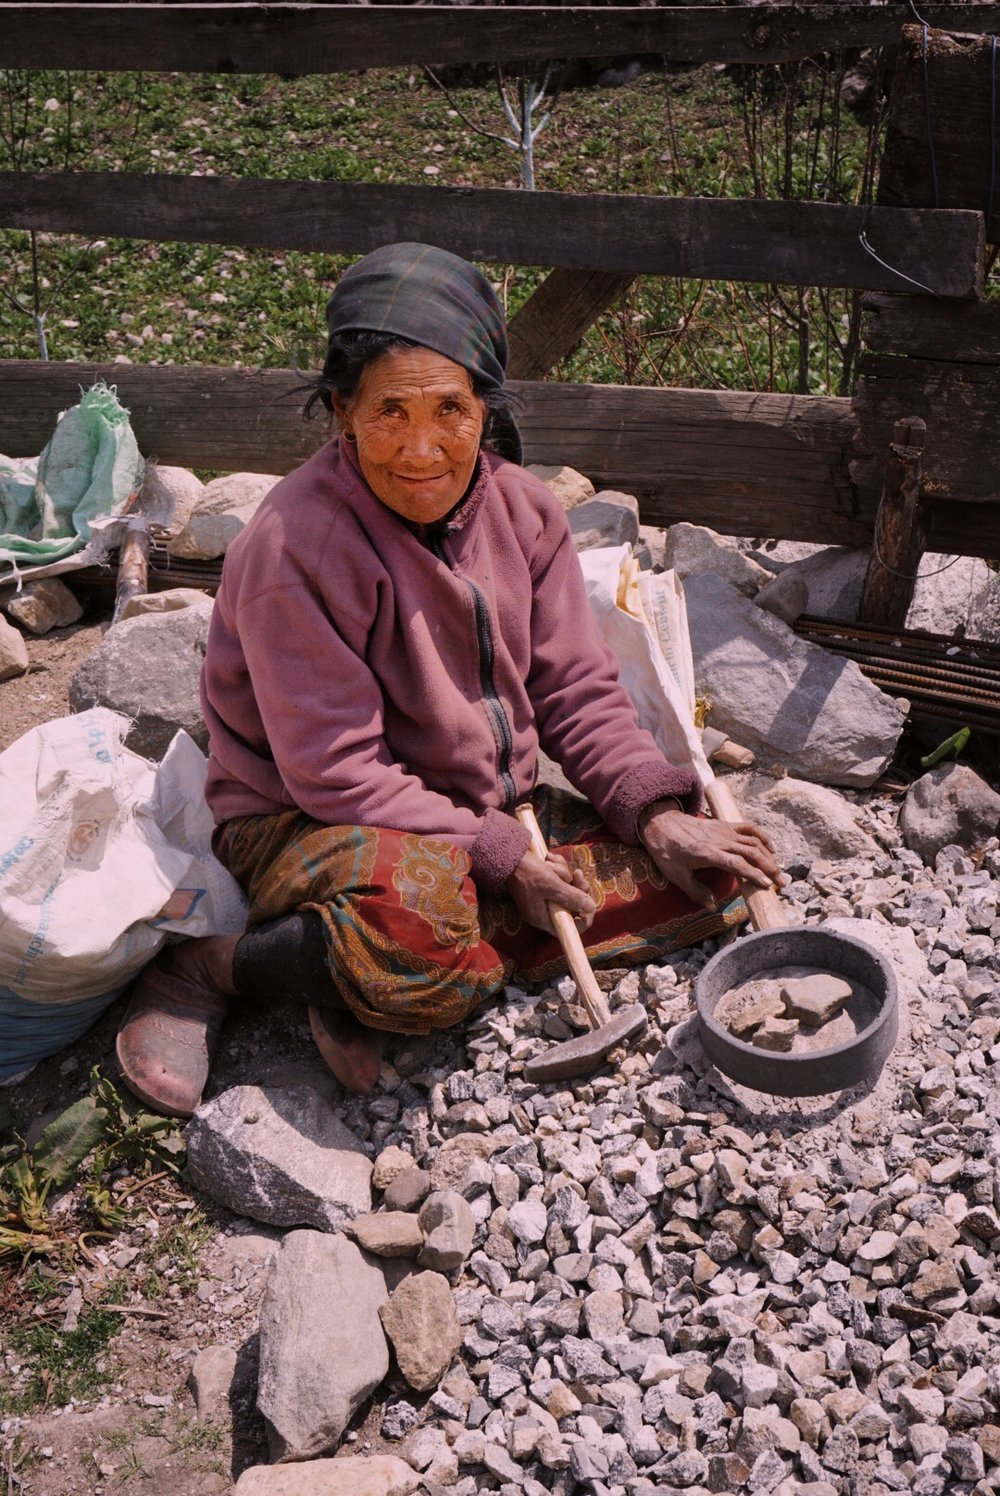 Elder woman in the village of Thanchowk breaking stones into smaller gravel for the village path